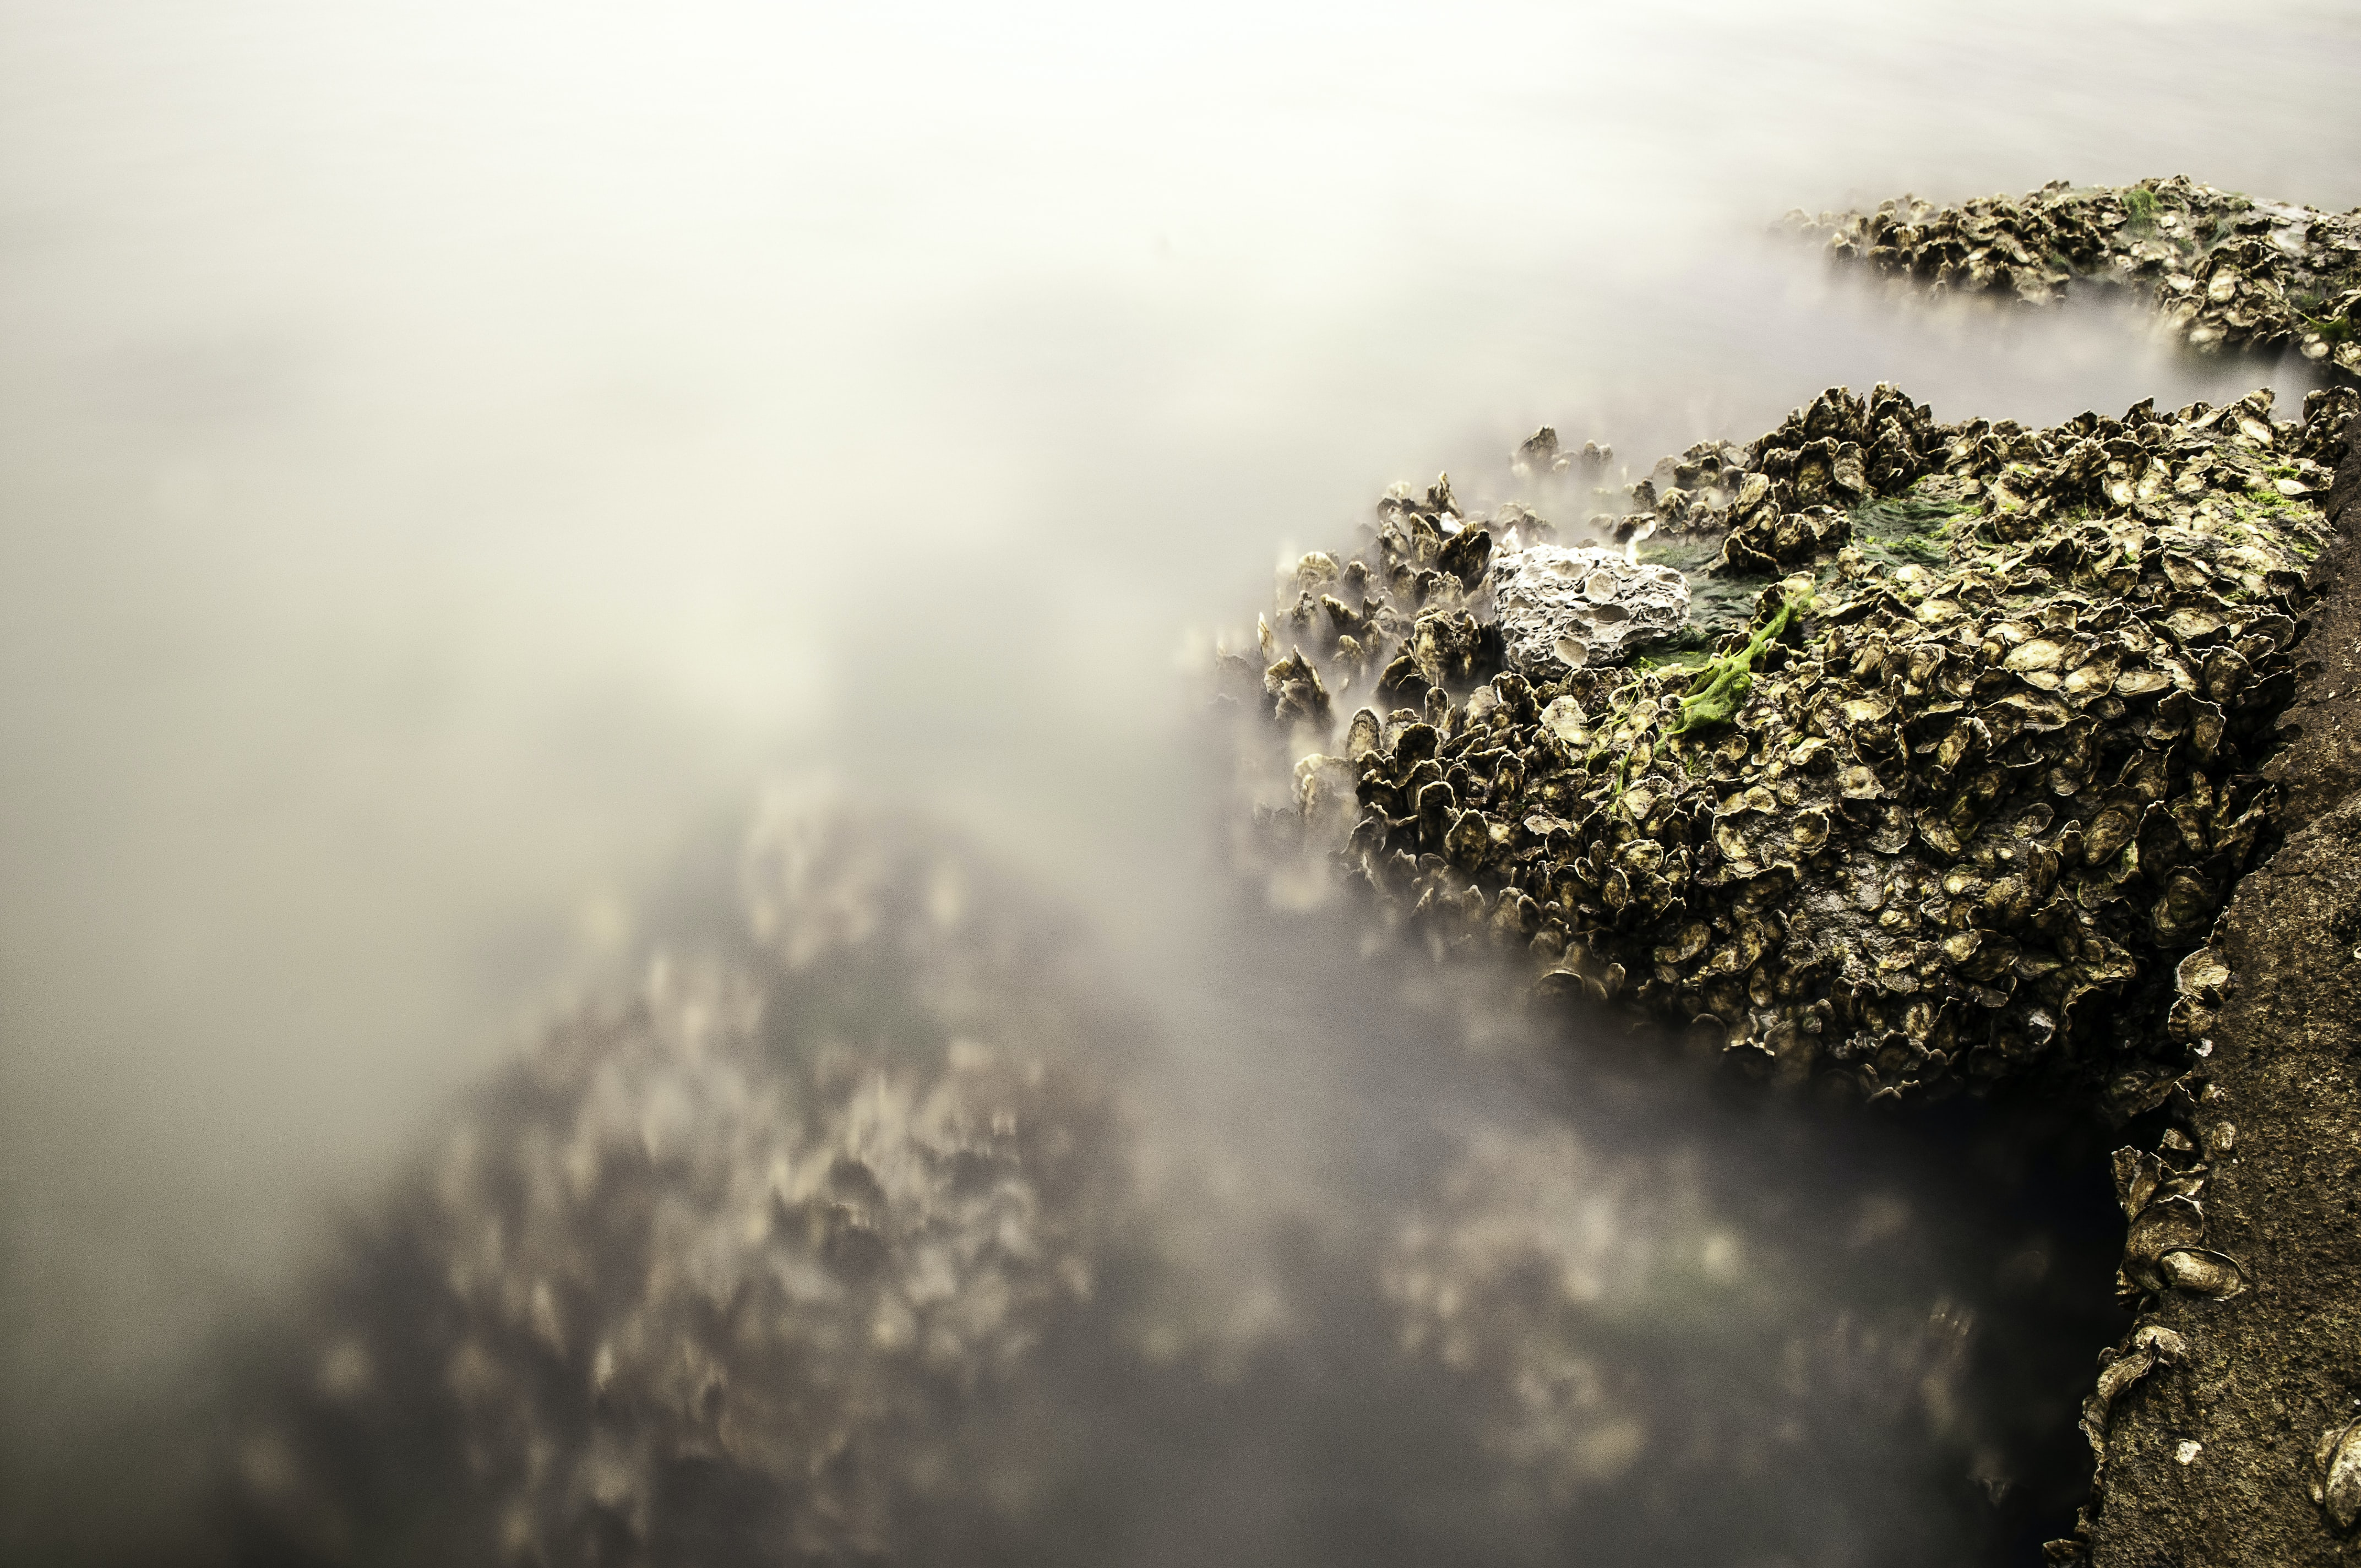 Misty beach with lichen, seaweed, shell and moss growing out of ocean rock at Atlantic beach